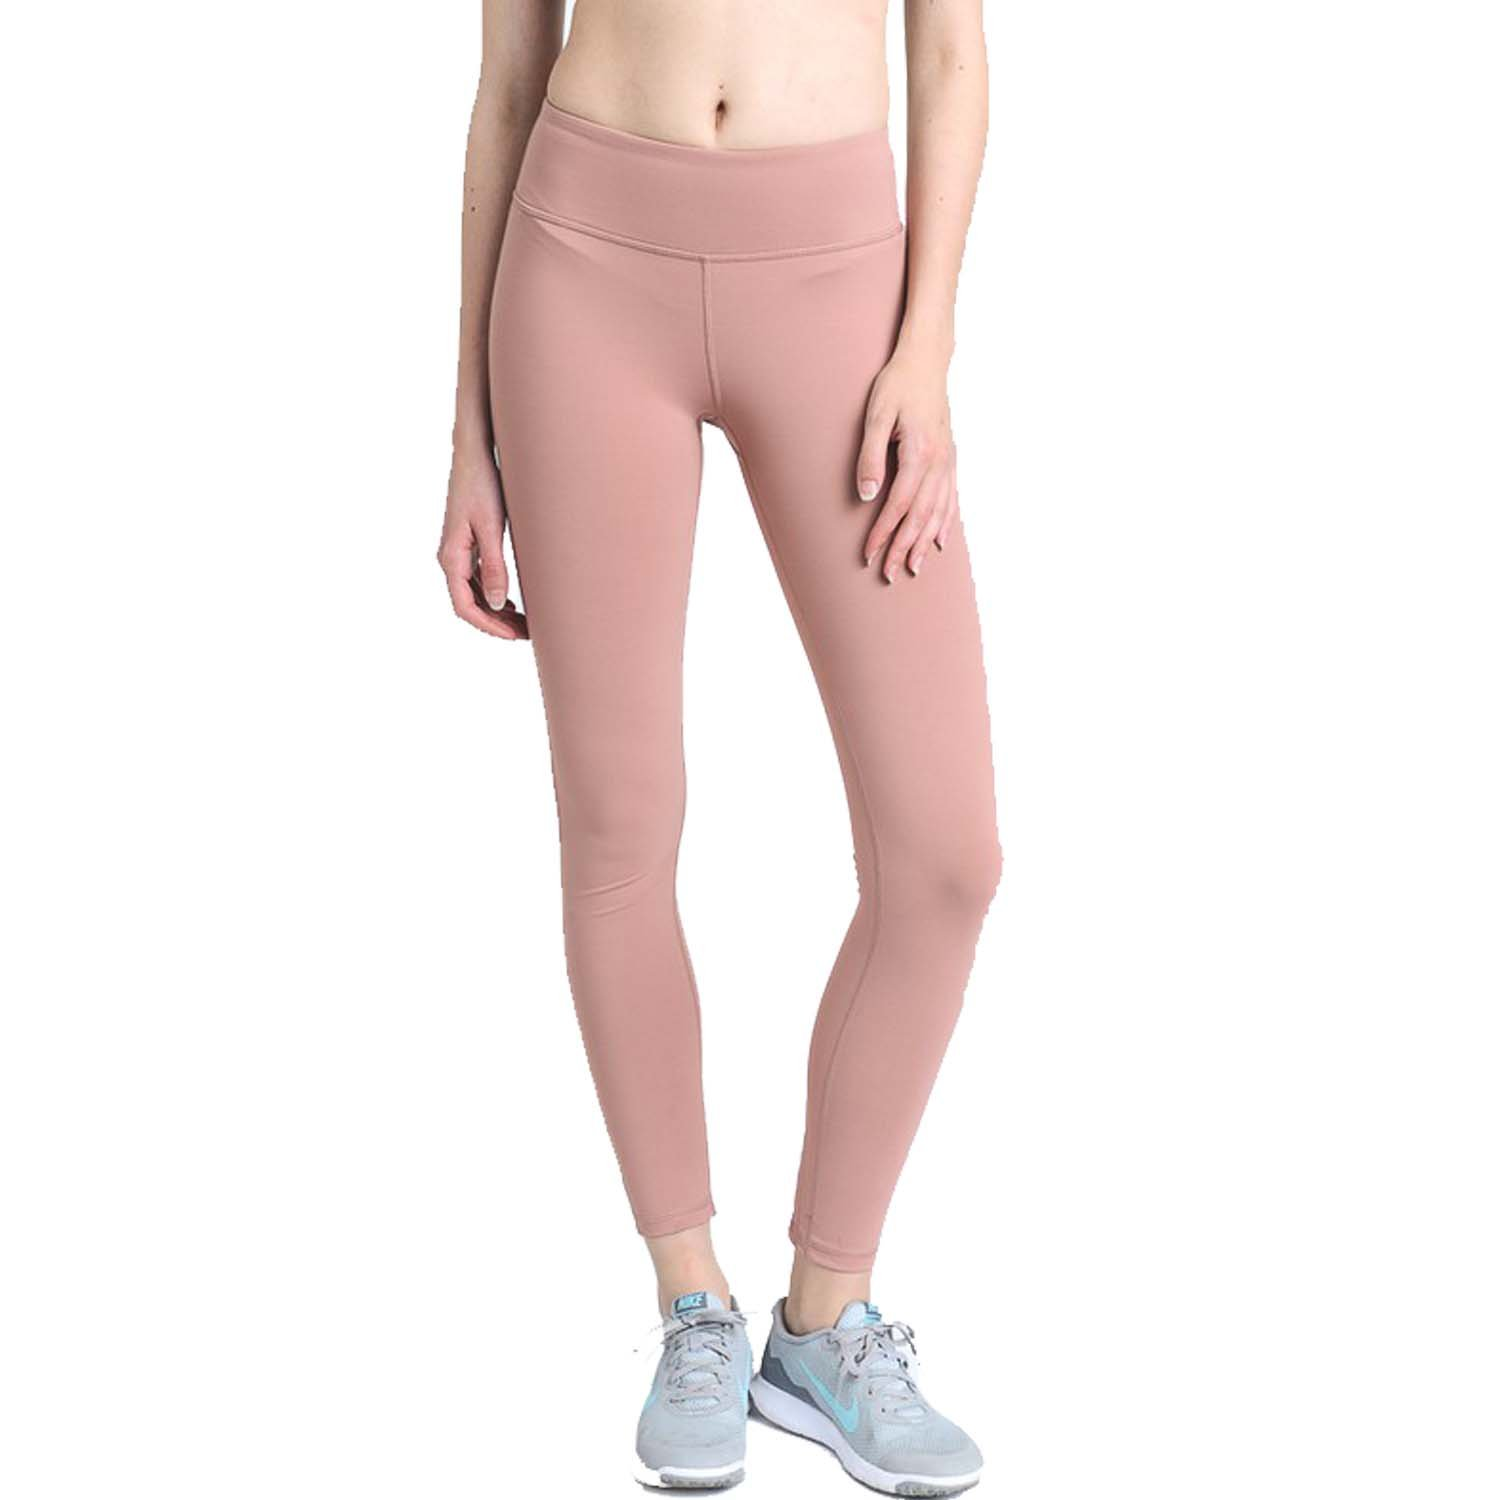 fa191822f382c Mono B Women's Athletic Full Leggings with Criss Cross Cut Accent at Amazon  Women's Clothing store: